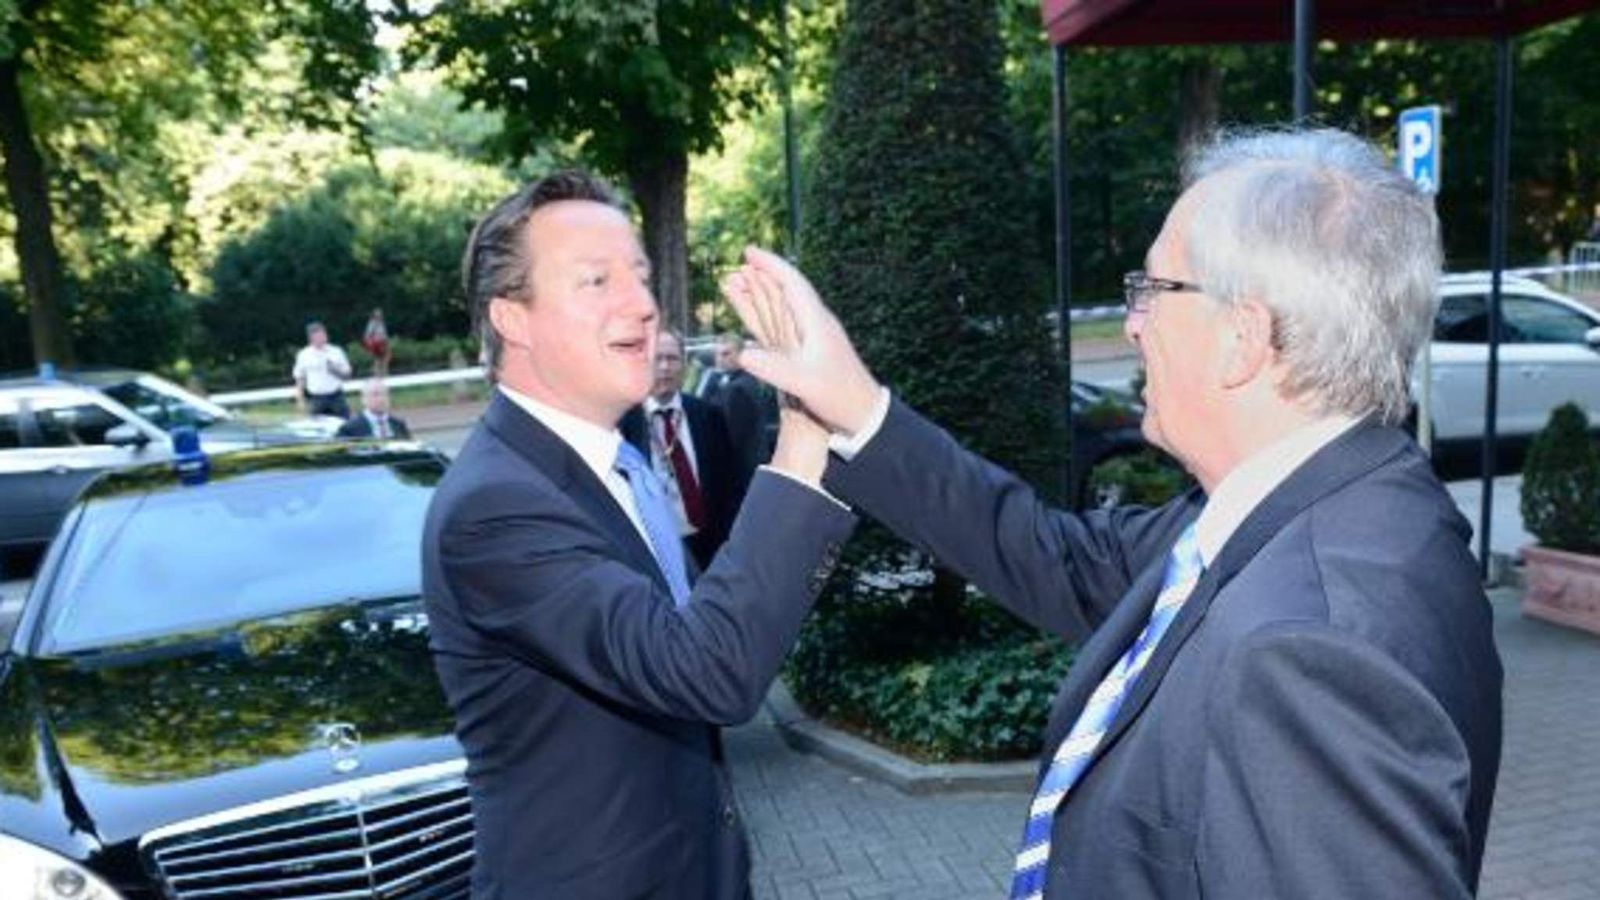 Jean-Claude Juncker, President-elect of the EC meets David Cameron. Pic: European Commission